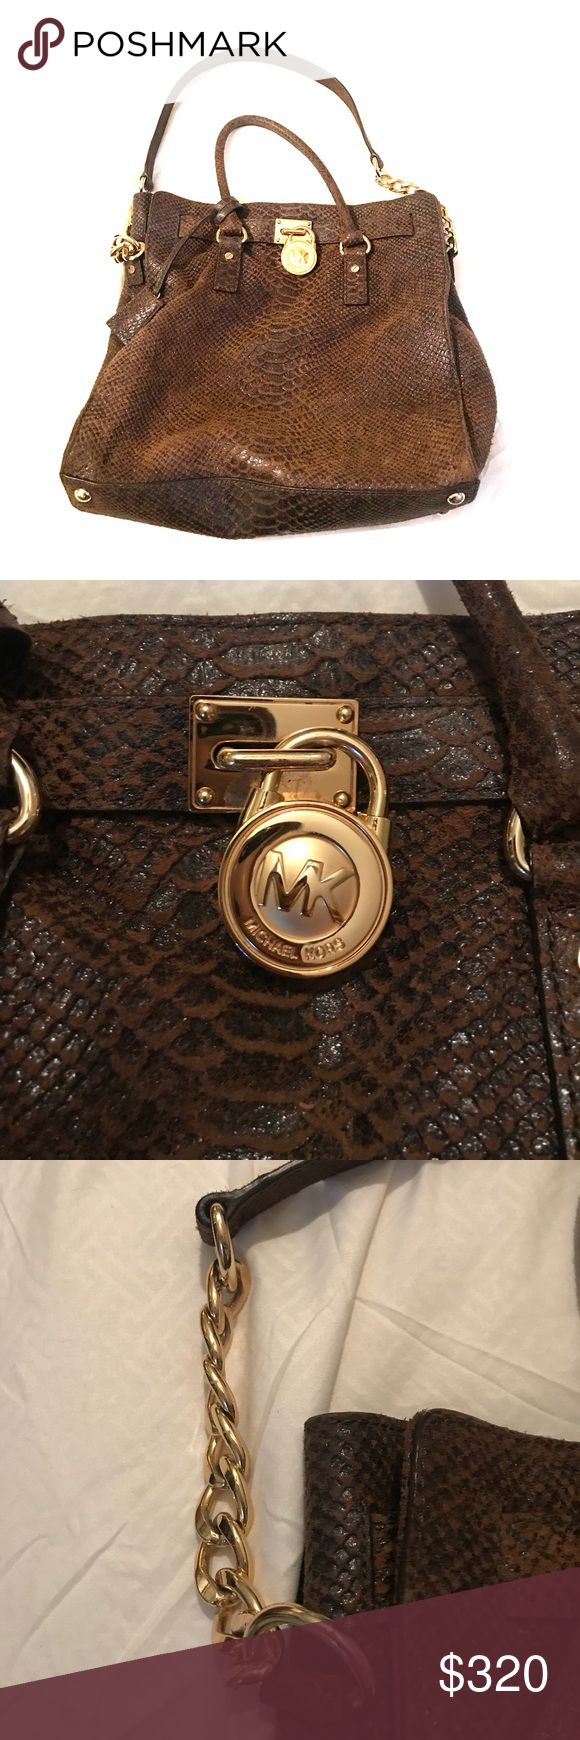 Michael Kors Snake Skin Suede Bag Authentic Michael Kors Snake Skin Suede Bag. Brown and Black Snake Skin! Fairly new! Small brown handle and long strap with gold chain!! Multiple pocket inside!! Signature Michael Kors pattern inside! No damage! Michael Kors Bags Shoulder Bags